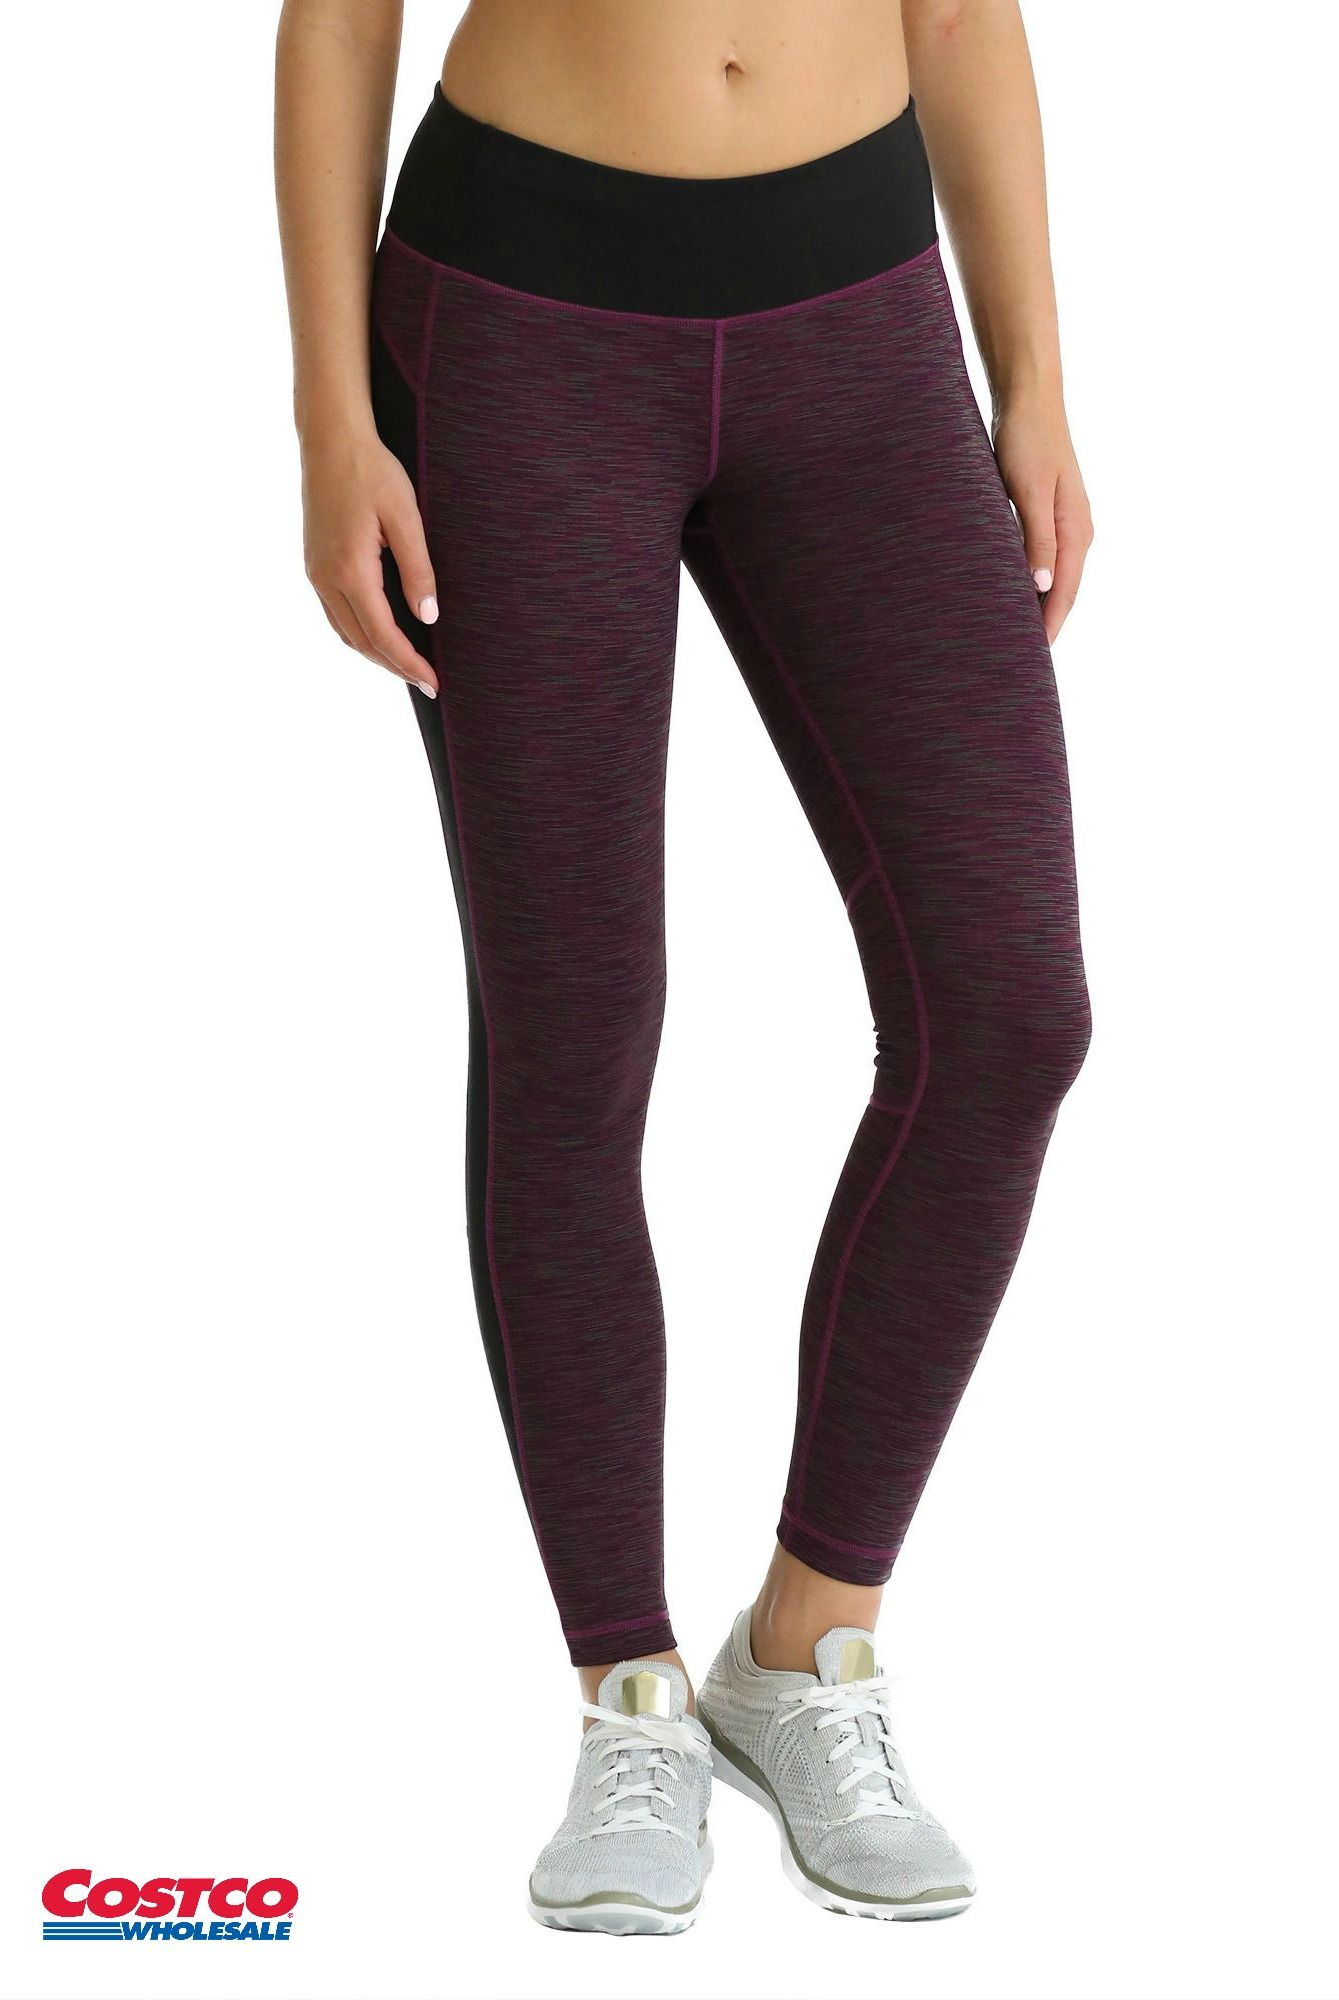 e9f0dd0033b Kirkland Signature Ladies' Jacquard Active Tight has 4-way stretch and  wicks moisture.